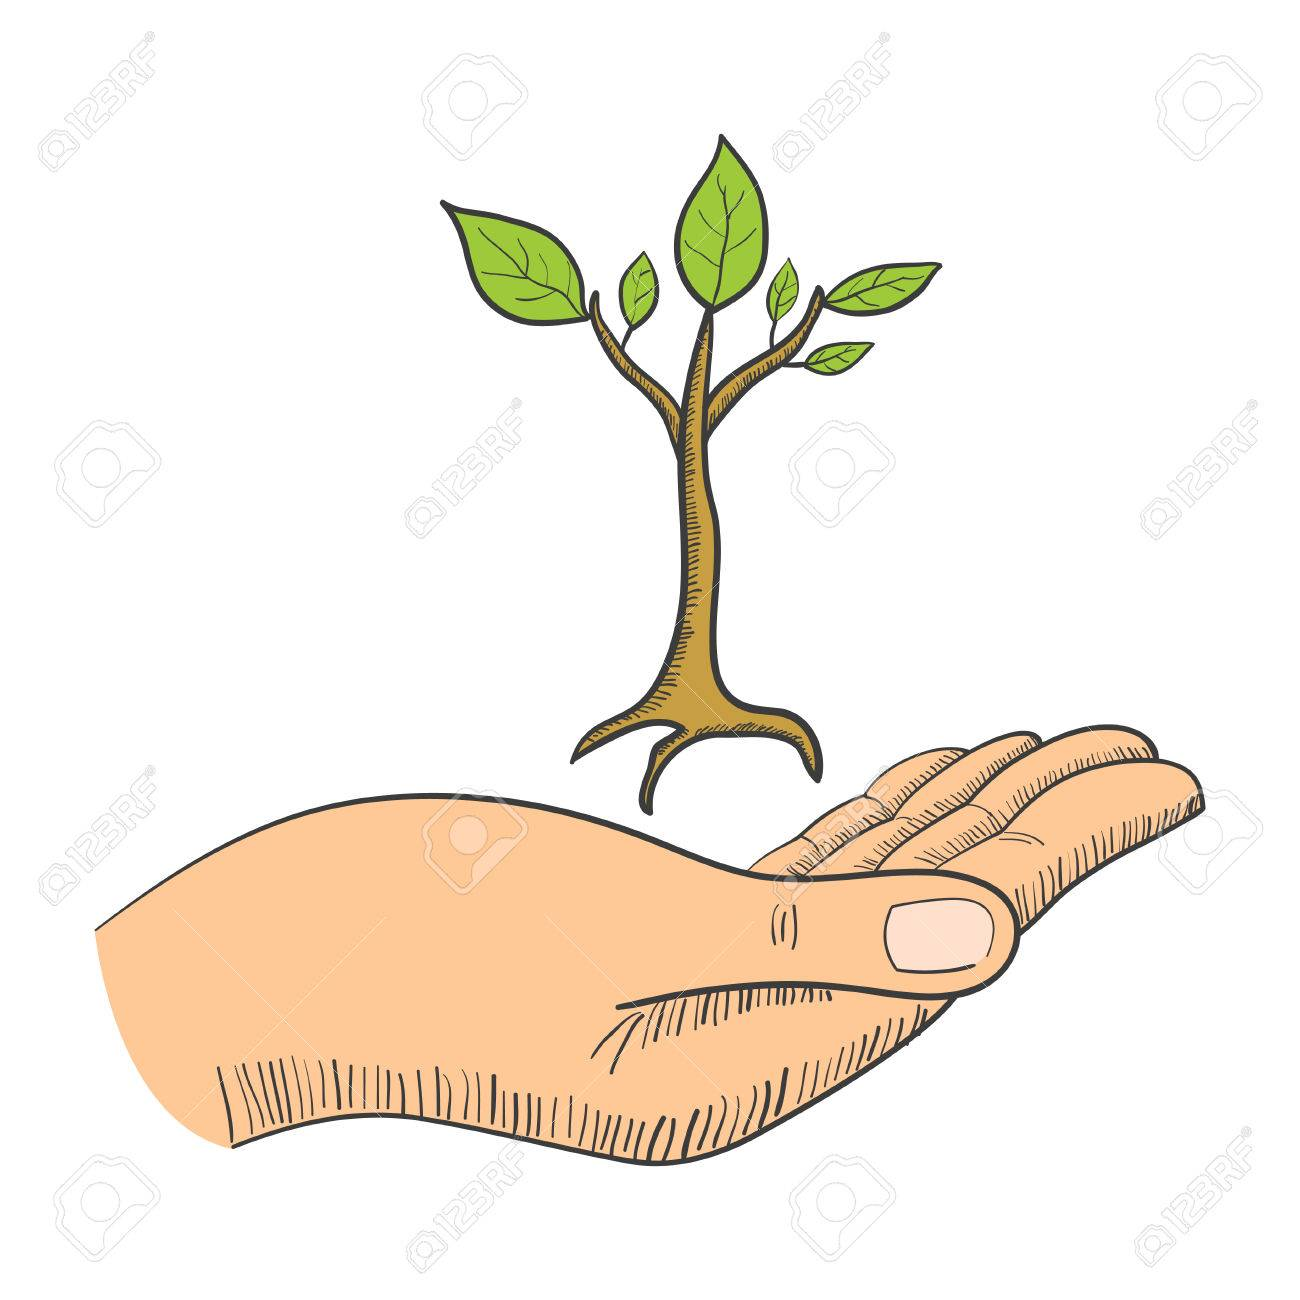 Simple Graphic Of A Hand With A Young Tree Symbol Royalty Free Cliparts Vectors And Stock Illustration Image 51855713 Free for commercial use no attribution required high quality images. simple graphic of a hand with a young tree symbol